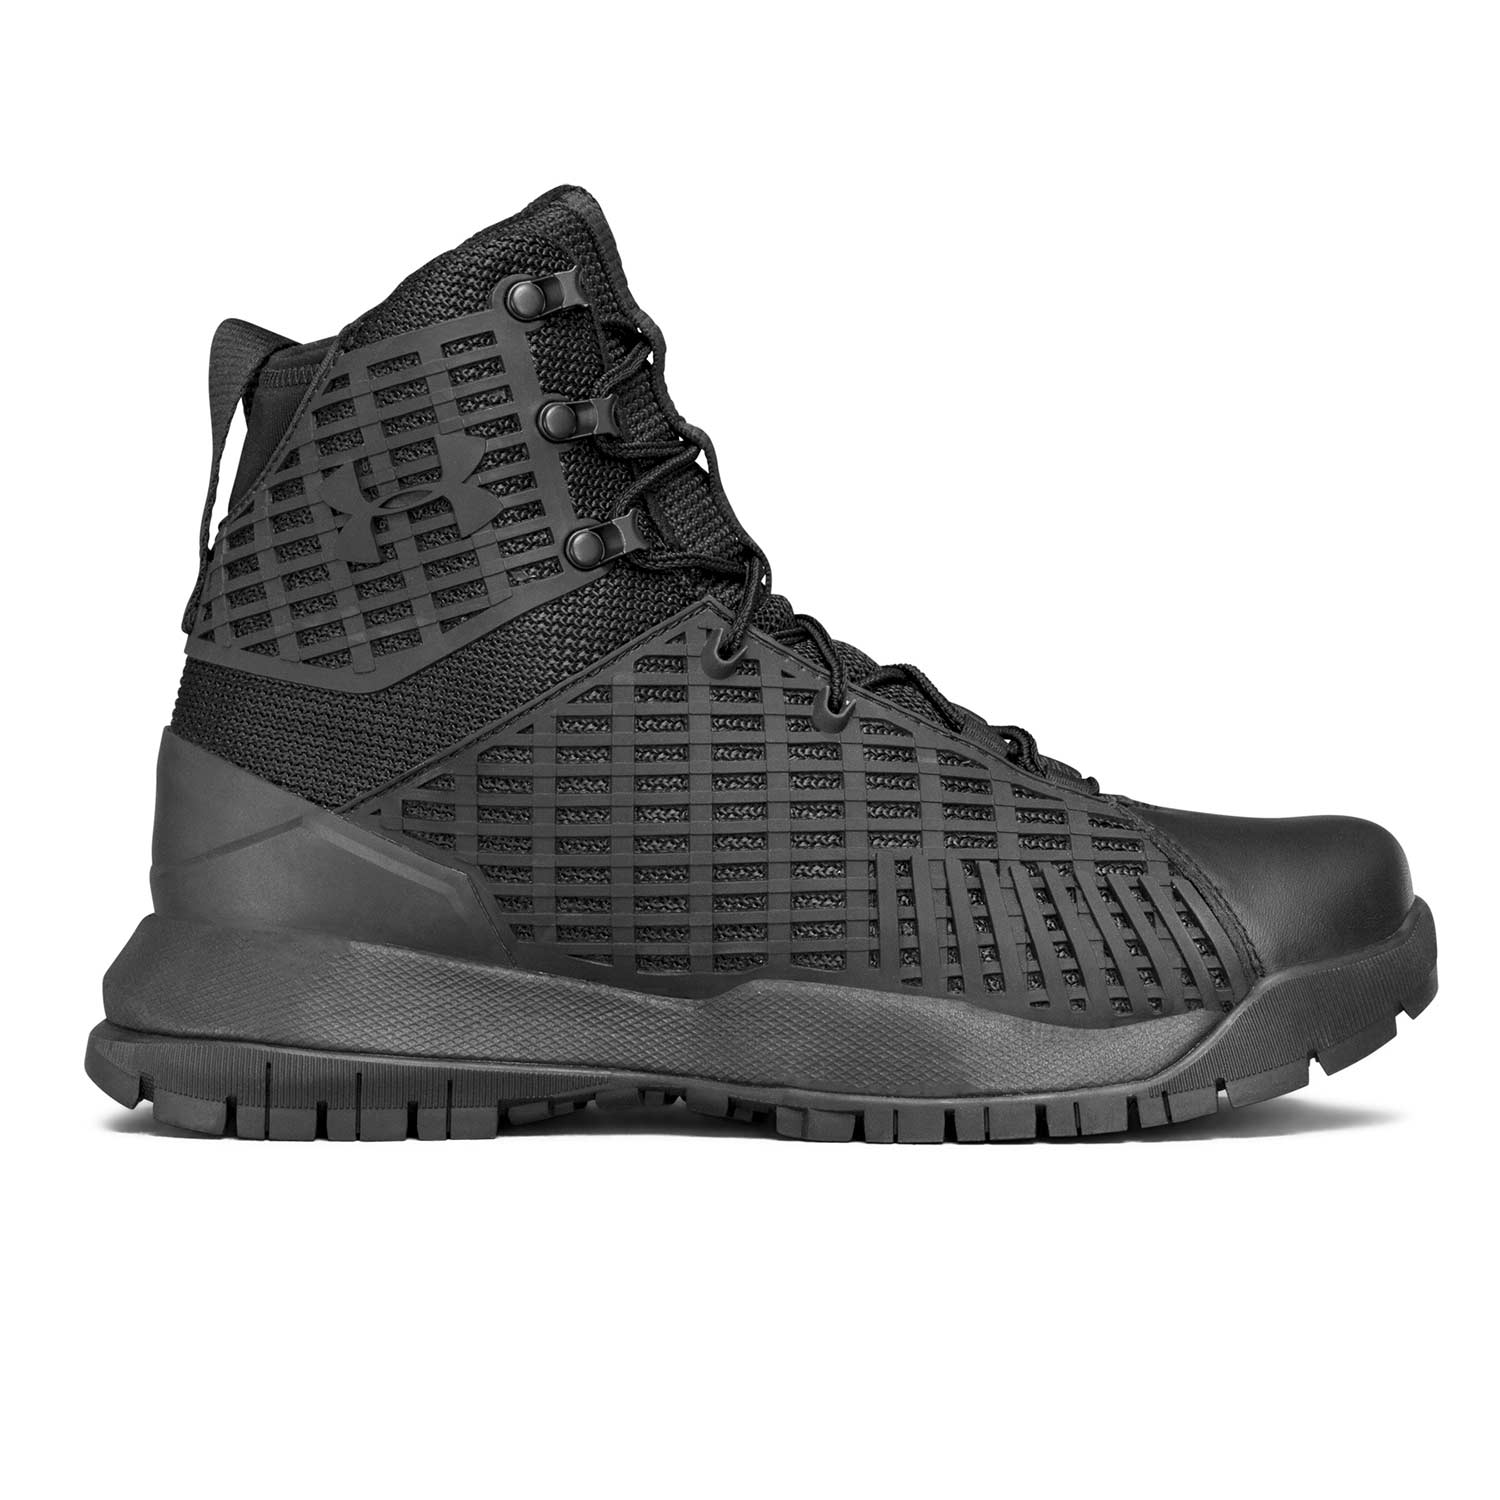 Under Armour Women's Stryker Duty Boots